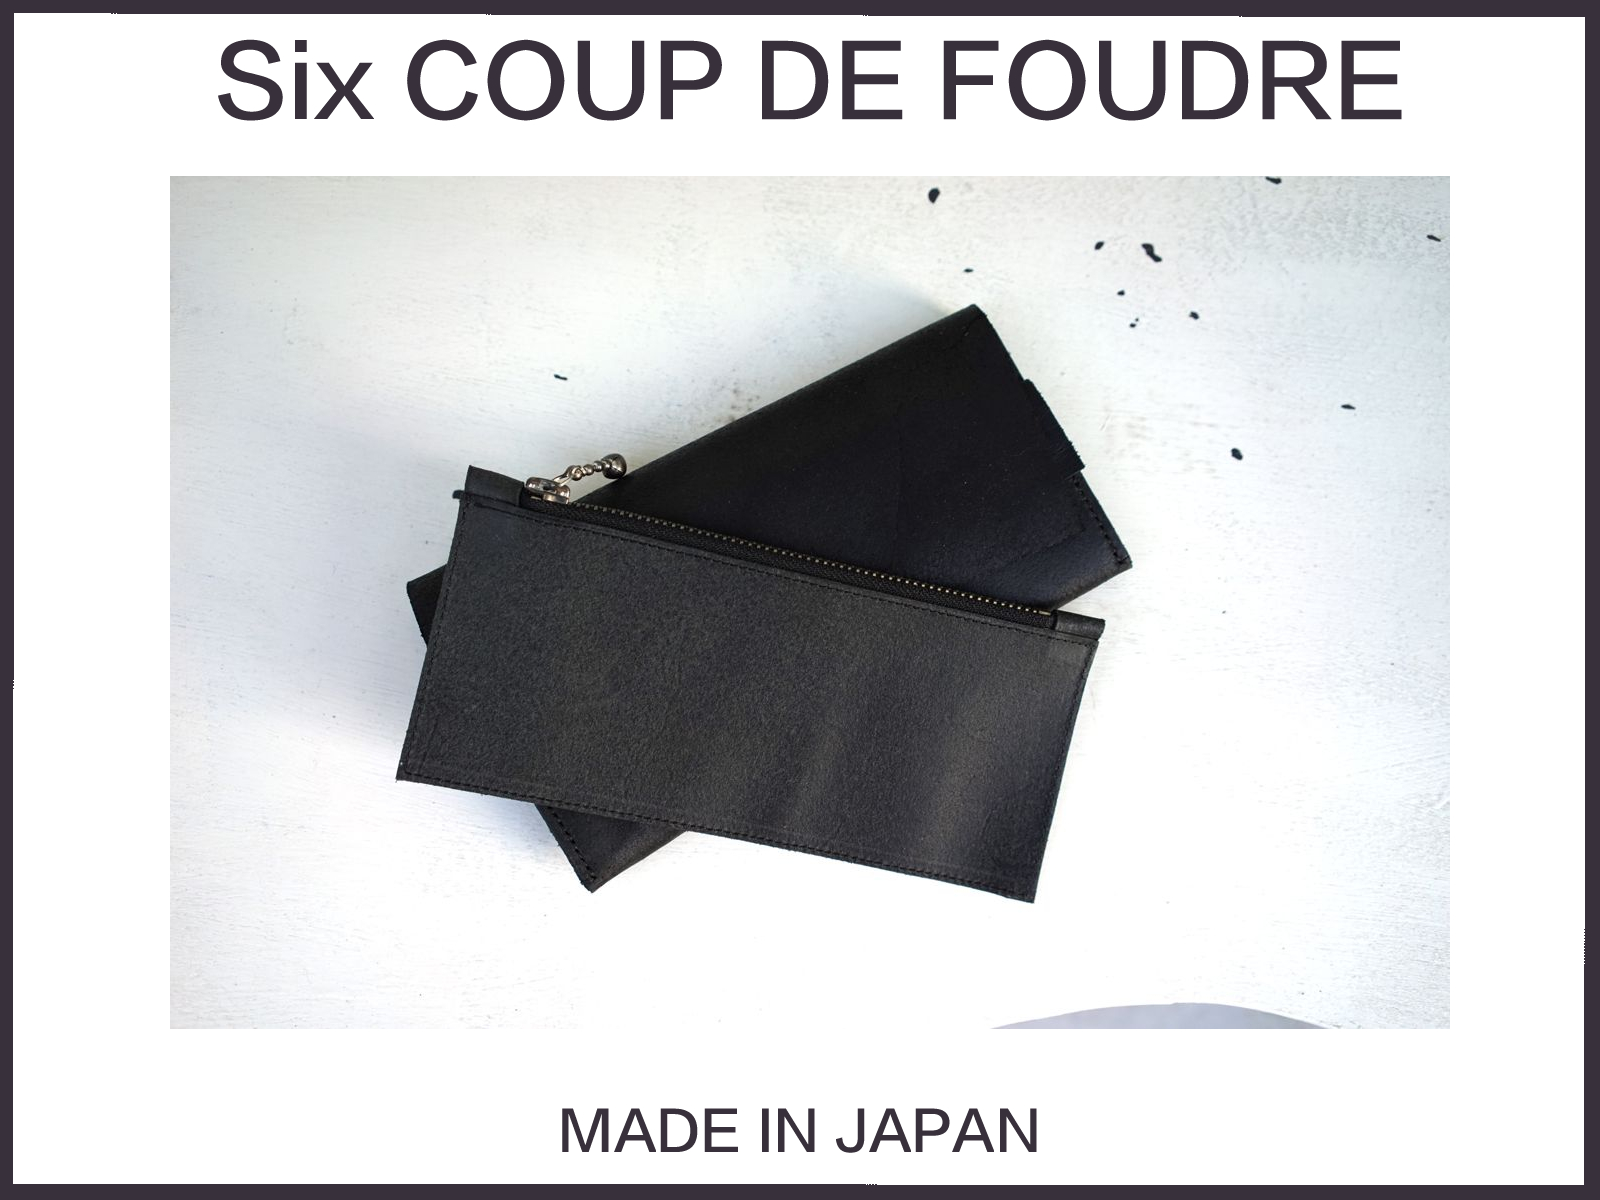 """Six COUP DE FOUDRE""CREATORS IN JAPAN"